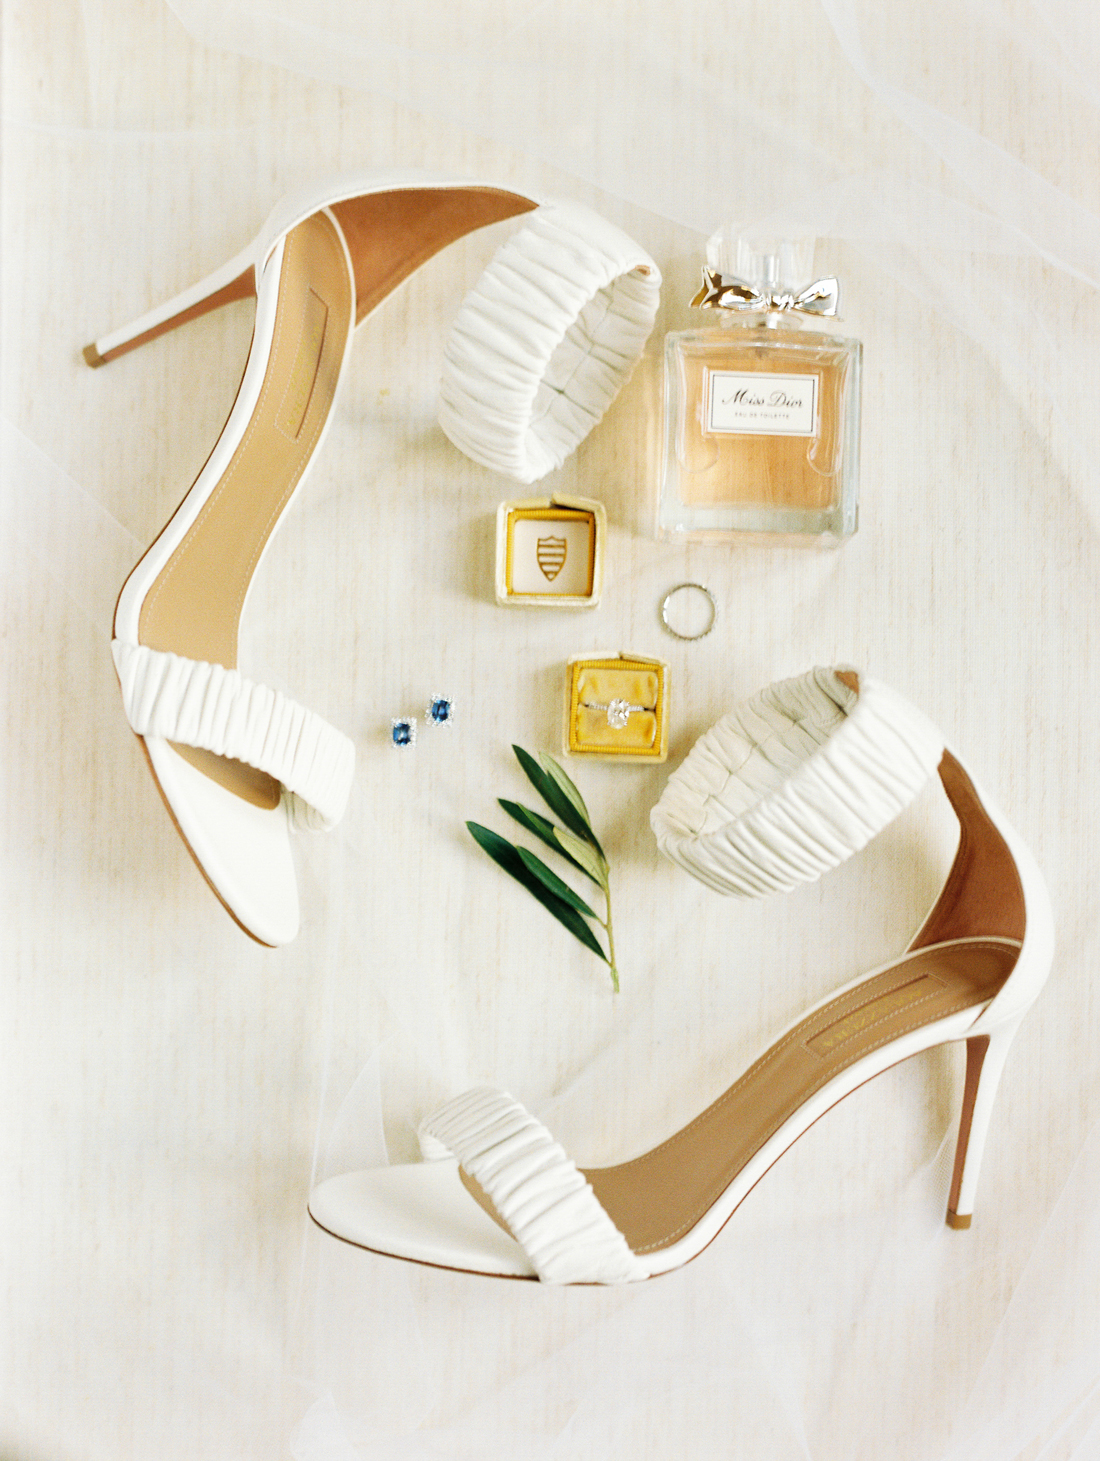 Miss Dior perfume, topaz earring studs, white pumps